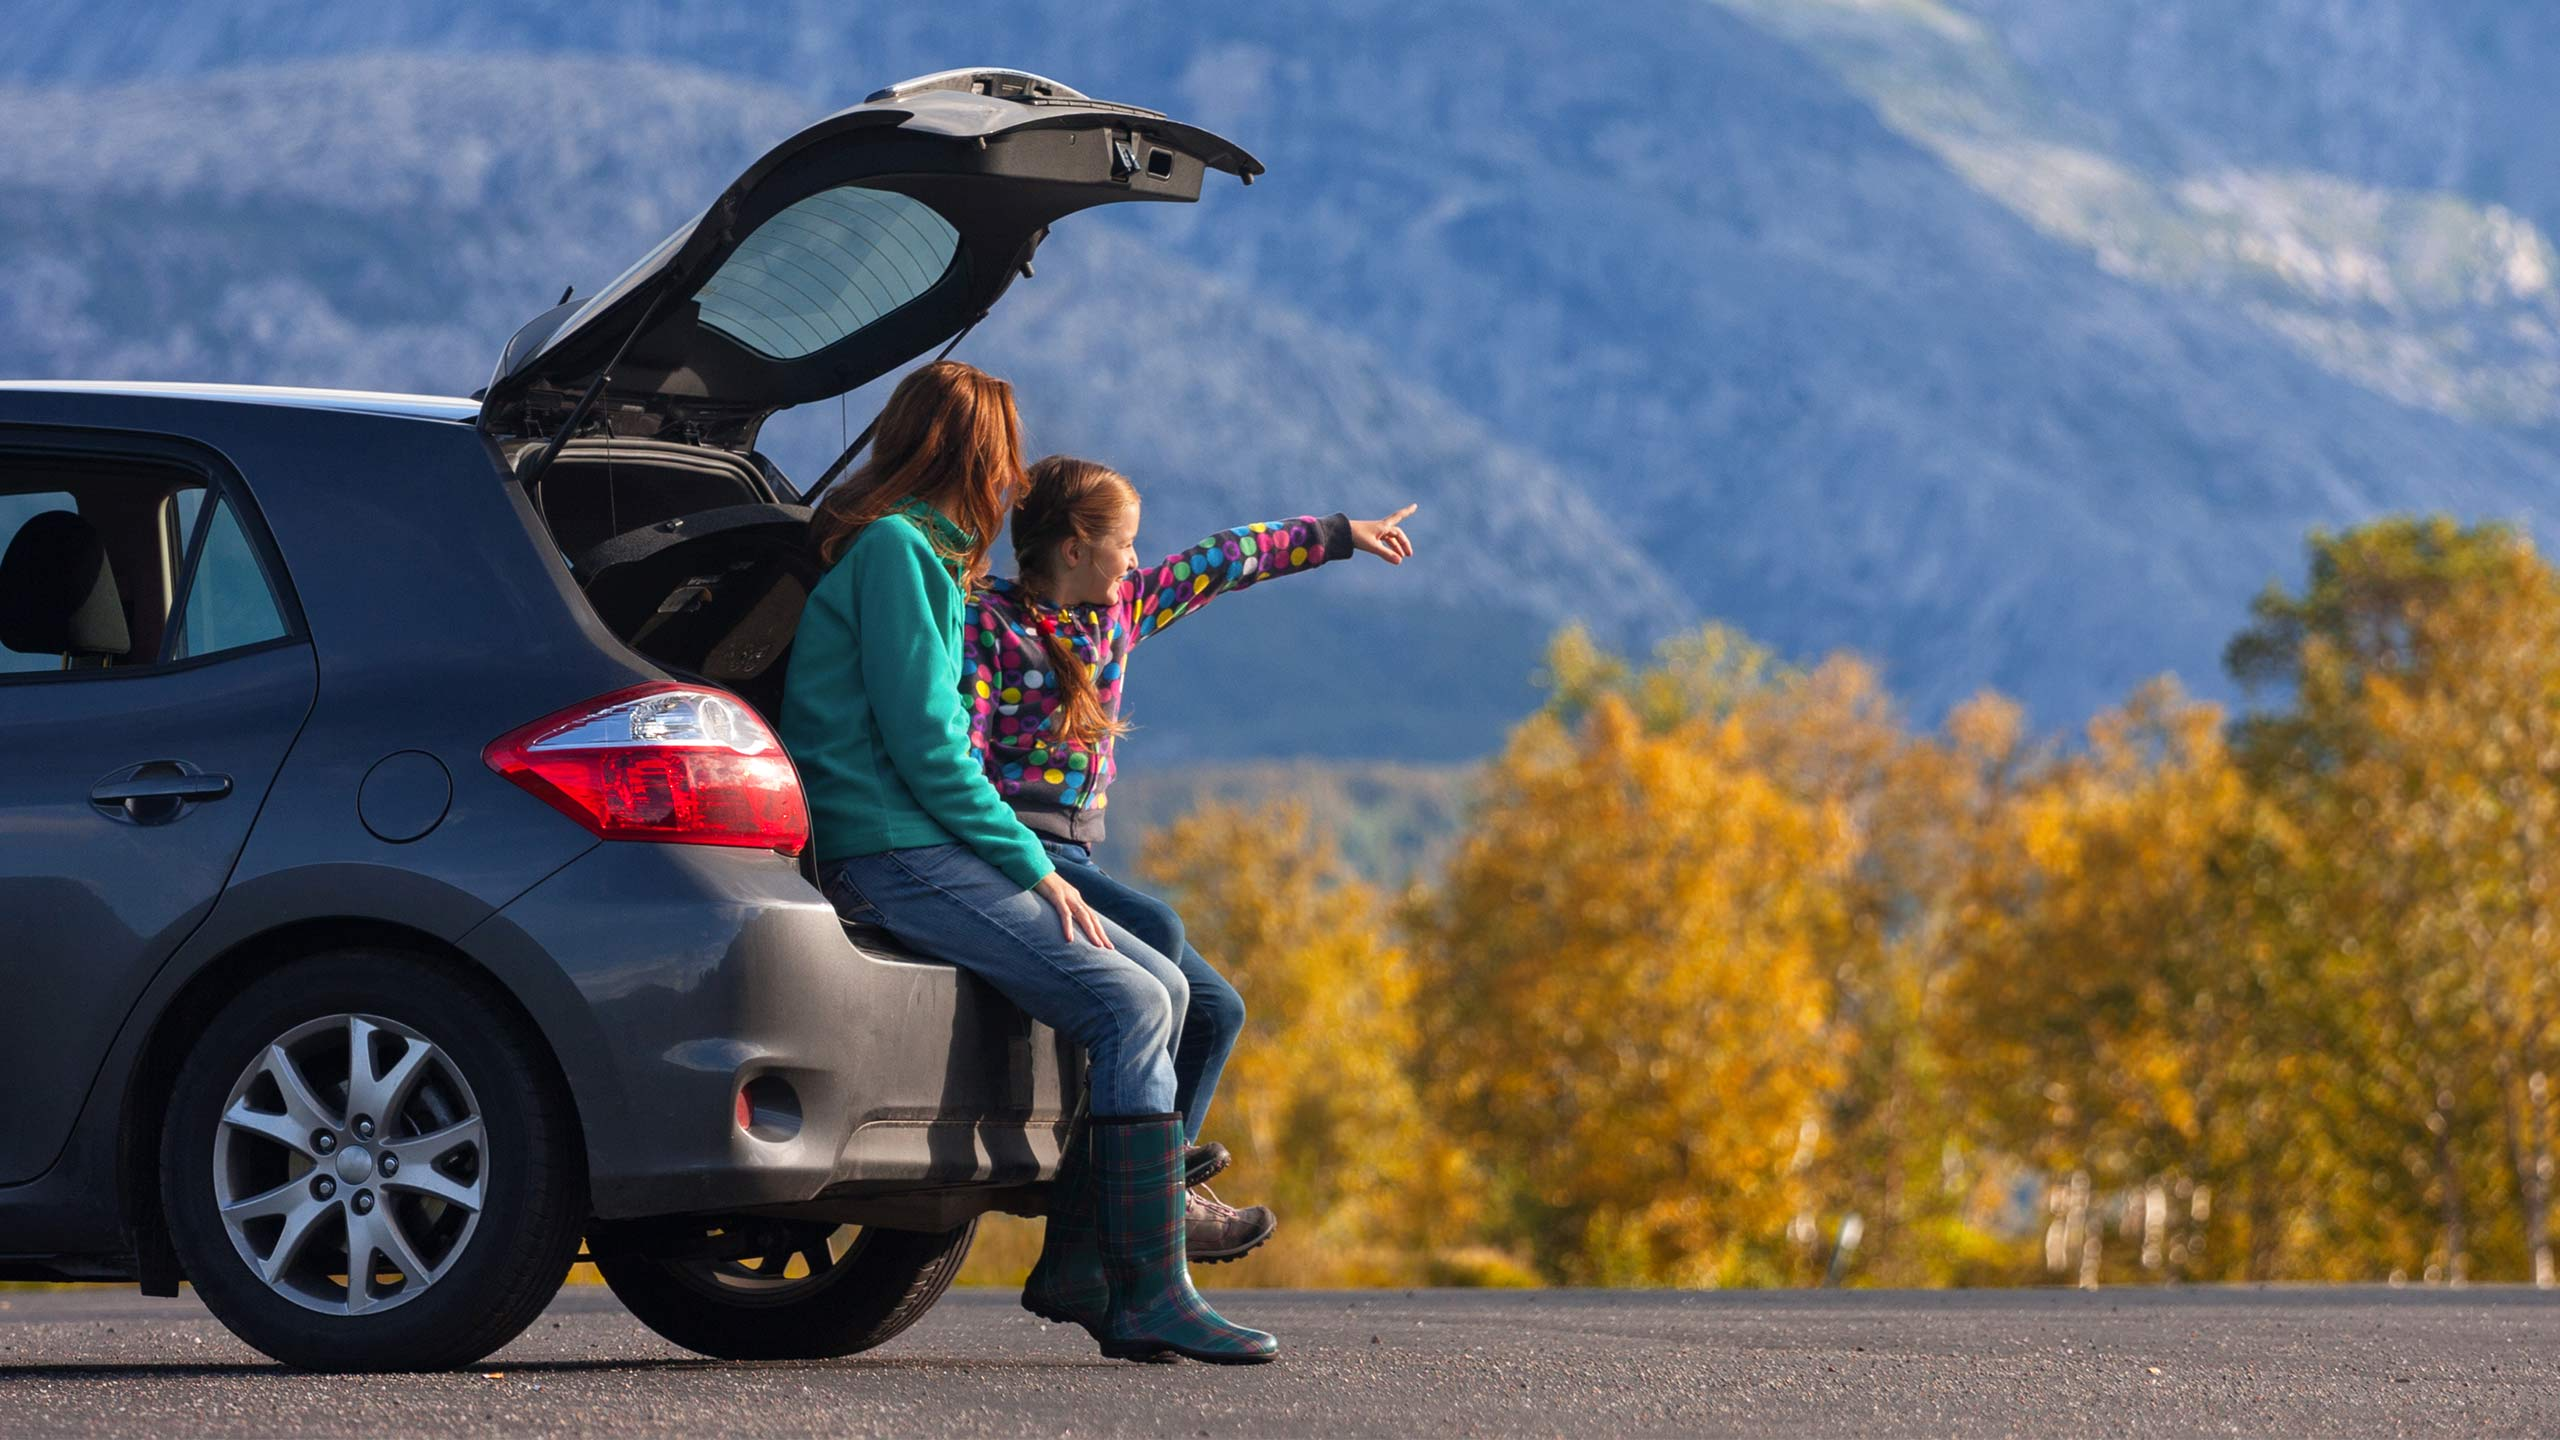 Few Important Things You Should Include While Hiring a Rental Car